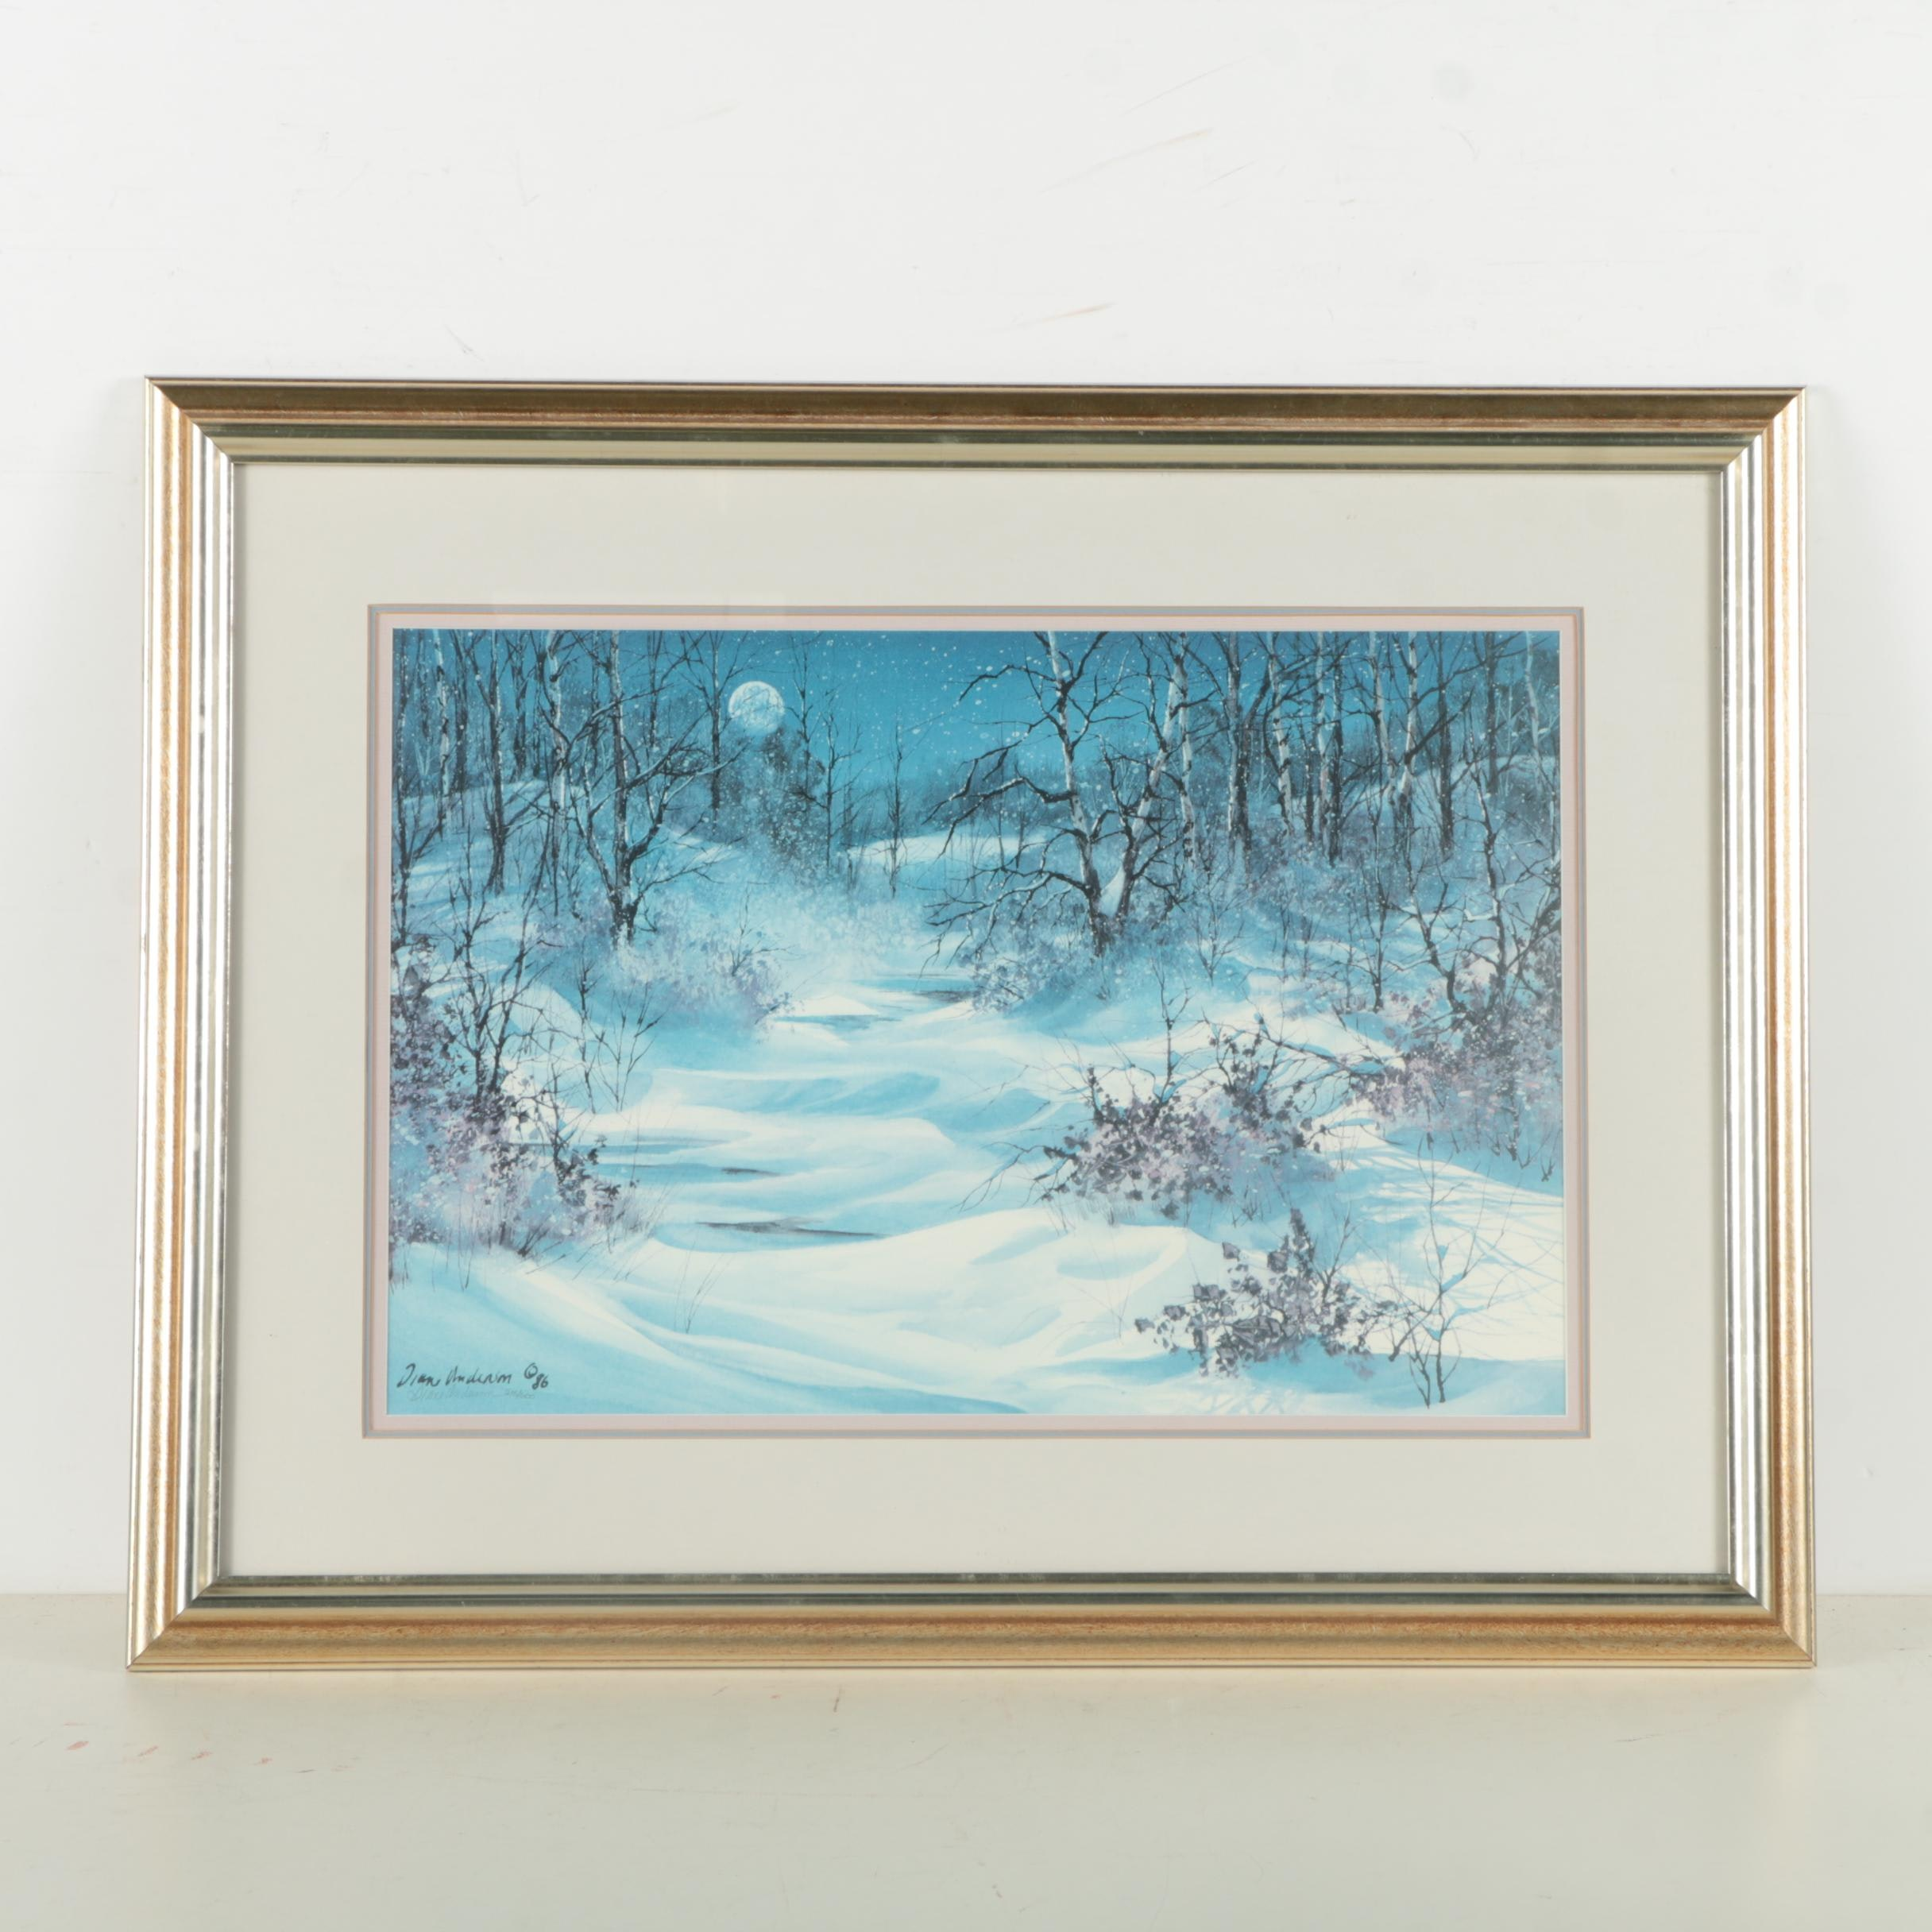 Diane Anderson Limited Edition Offset Lithograph